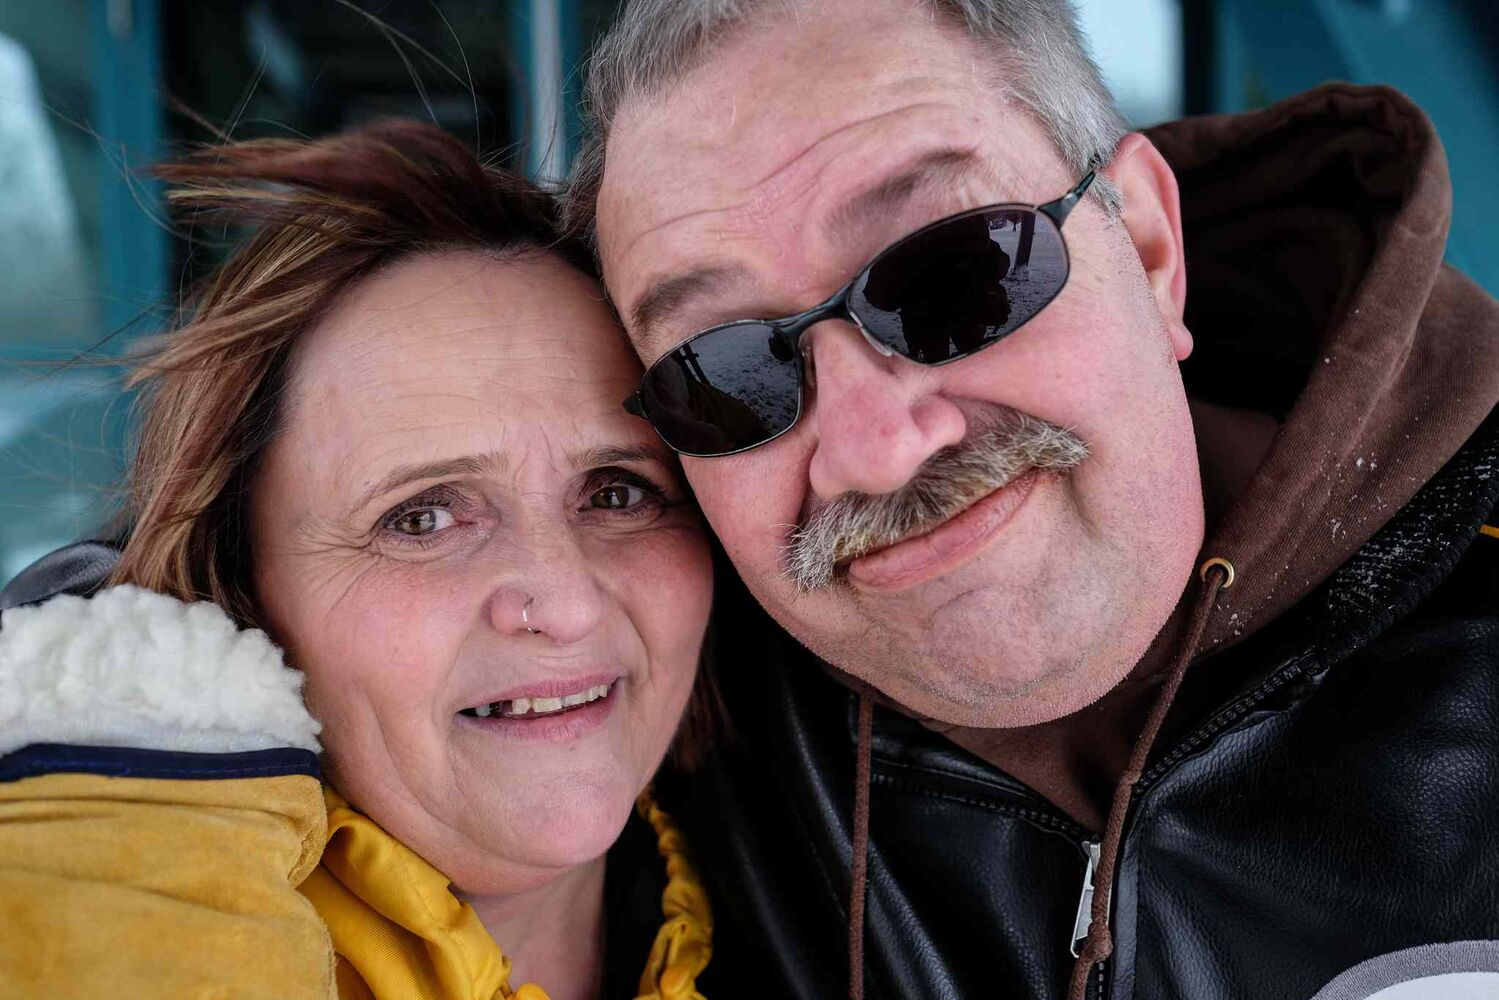 Cathy Hurd and Tom Carter have been together for 16 years. Last year Tom was diagnosed with frontotemporal dementia, a disease that will eventually take Tom's life.  MIKE DEAL / WINNIPEG FREE PRESS